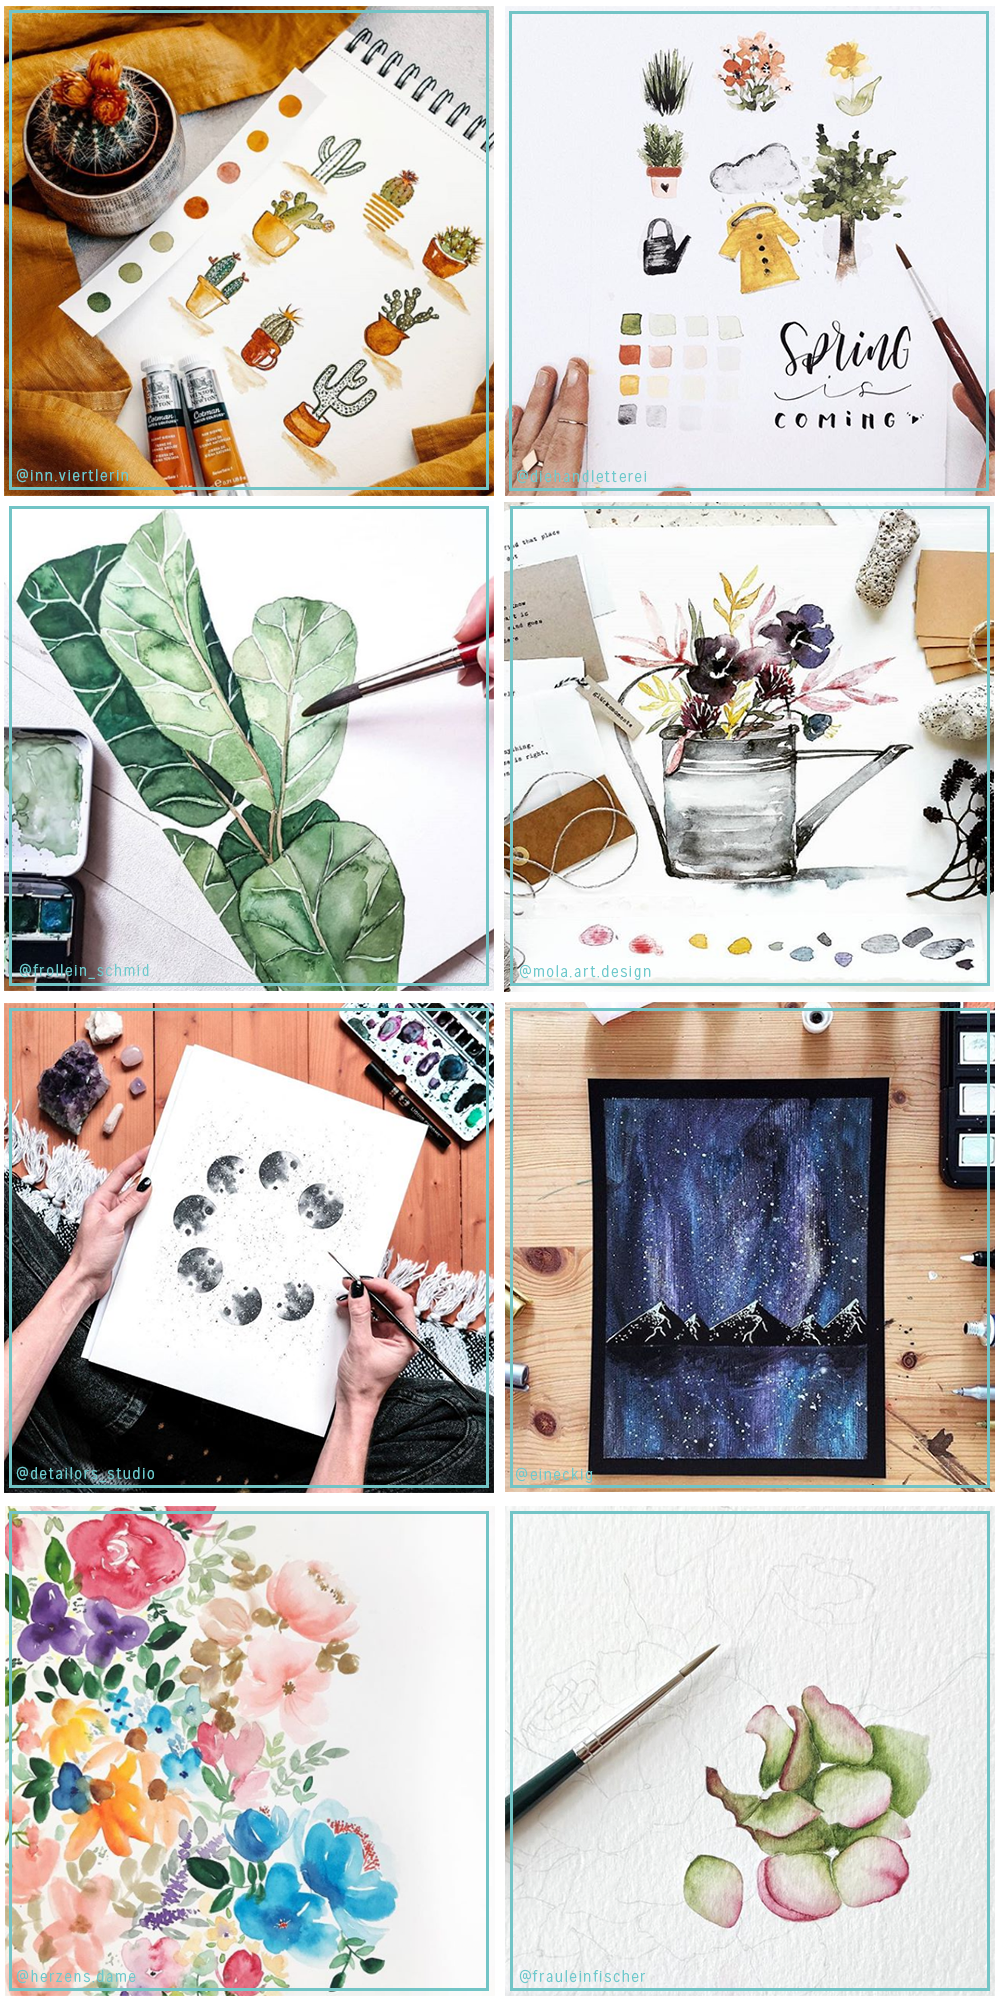 Feature: Aquarellkünstlerinnen auf Instagram | we love handmade